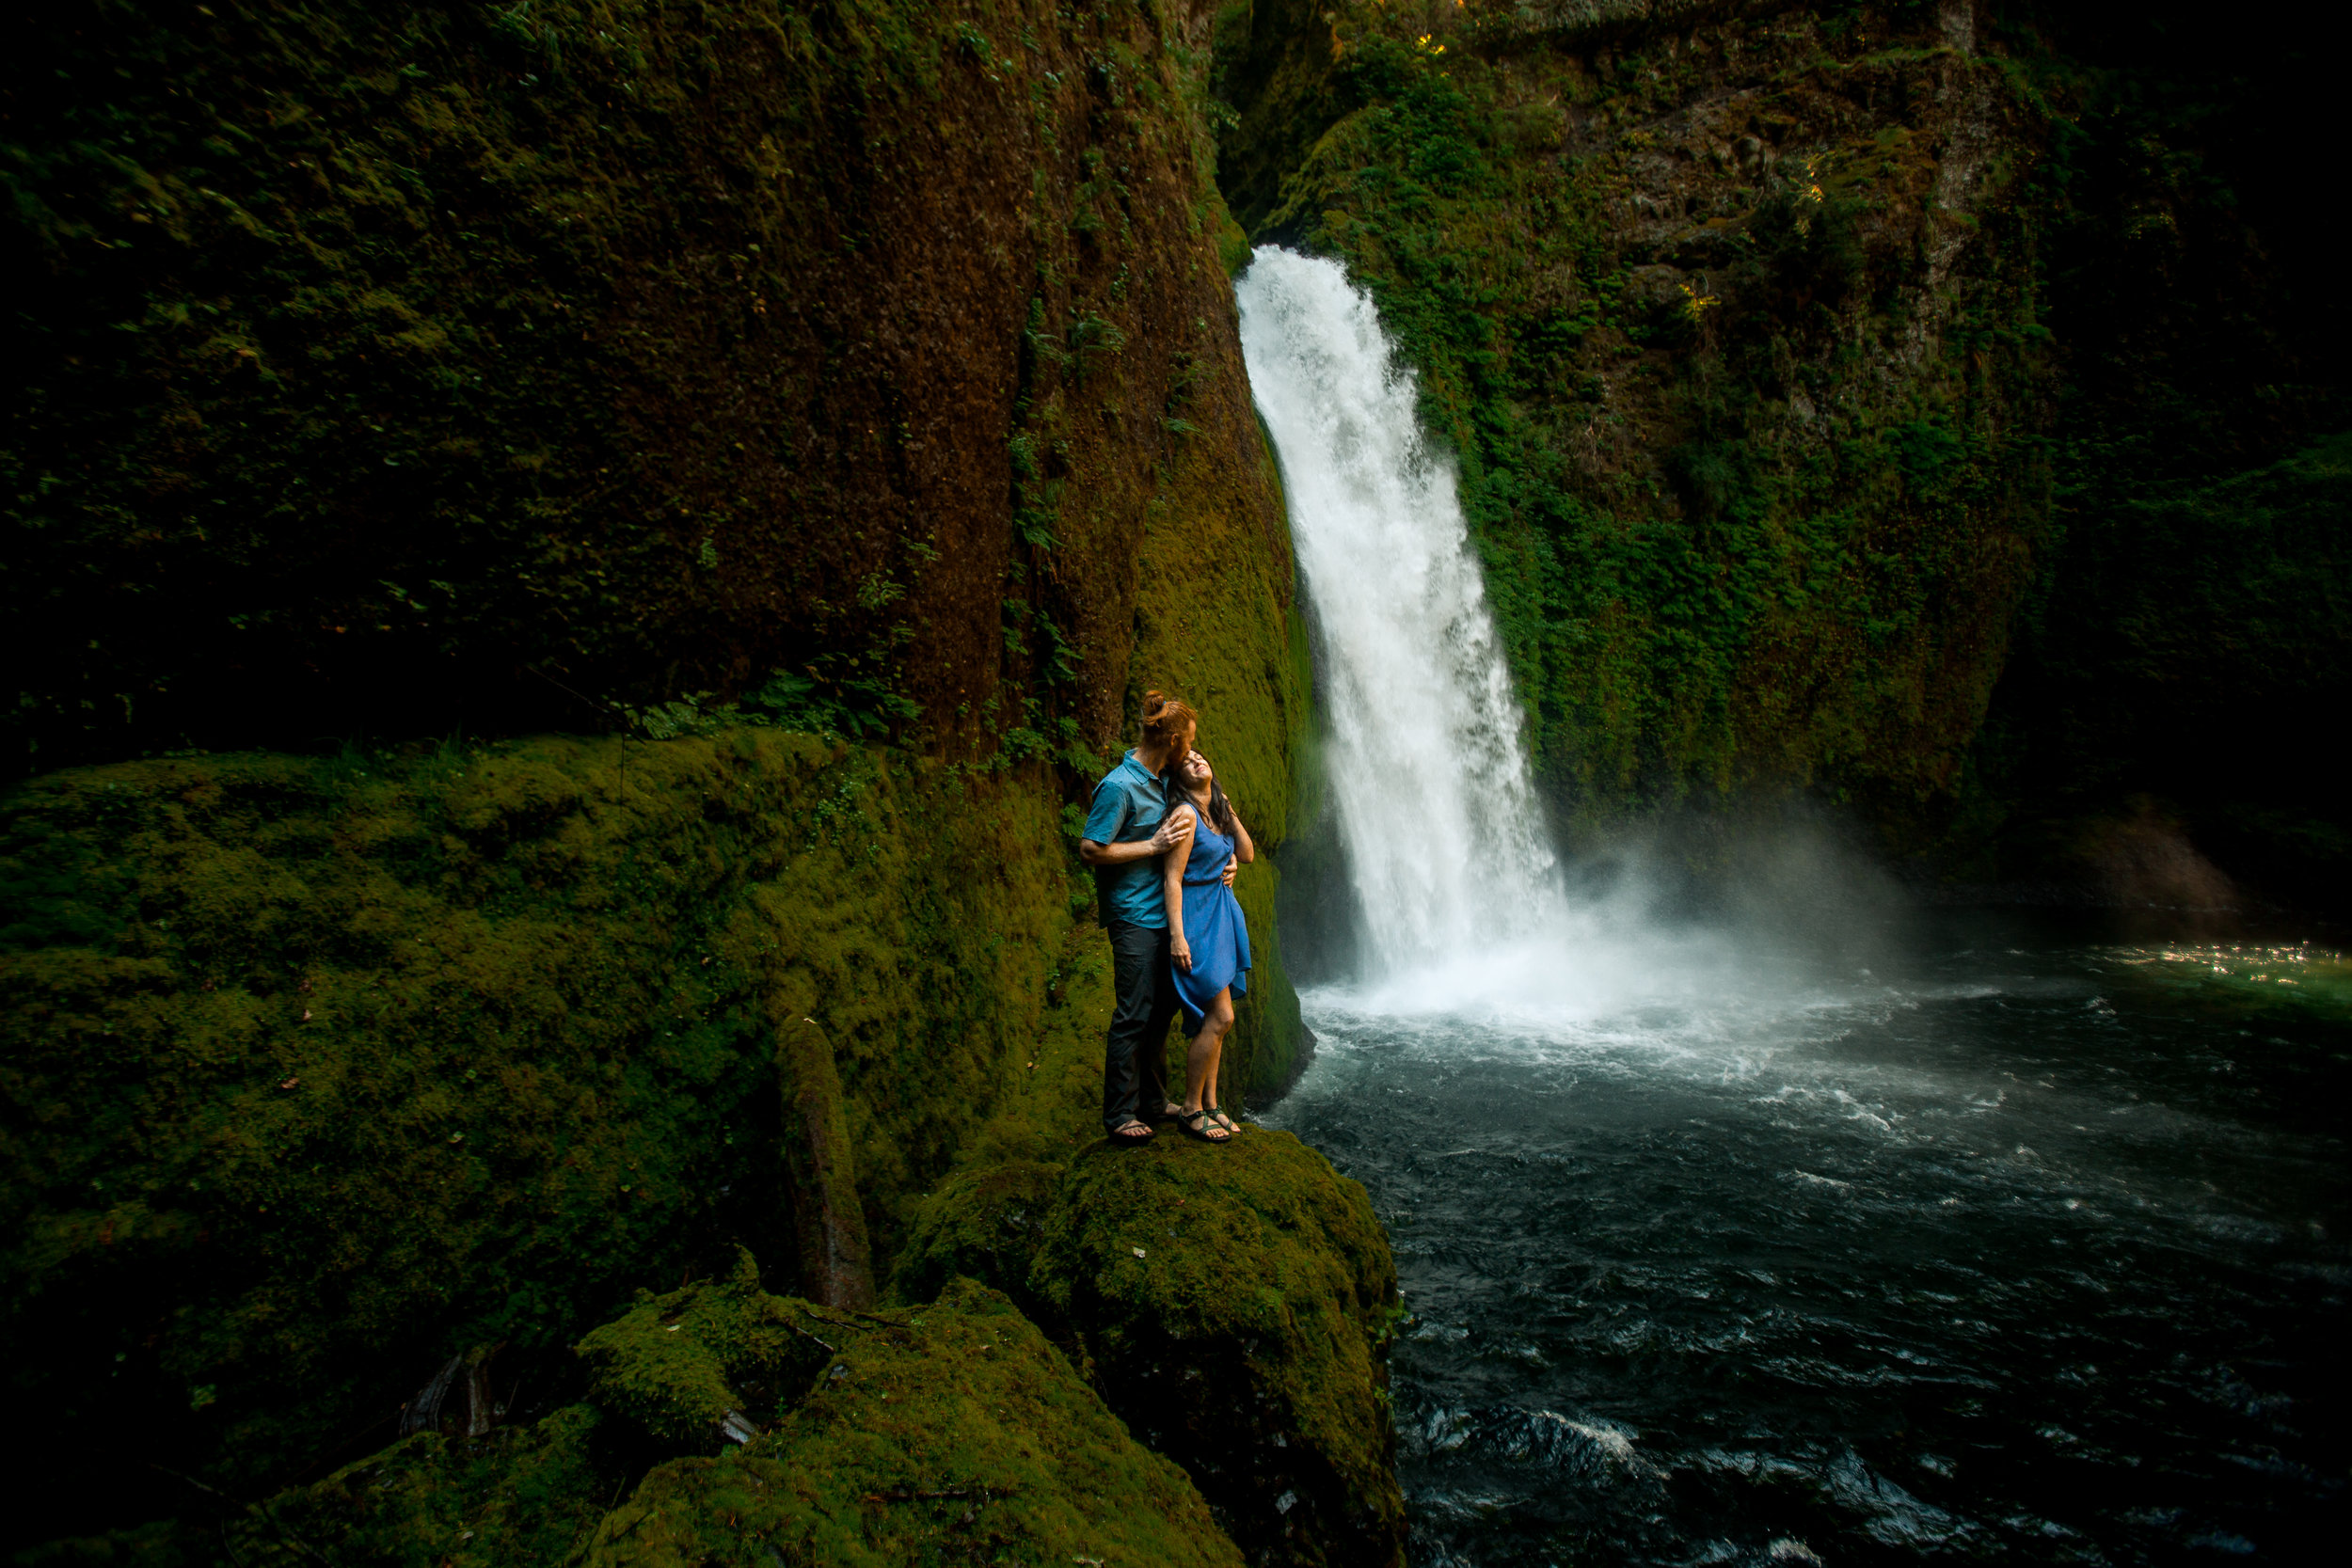 nicole-daacke-photography-wahclella-falls-waterfall-engagement-session-portland-engagement-photographer-columbia-river-gorge-oregon-elopement-photographer-14.jpg